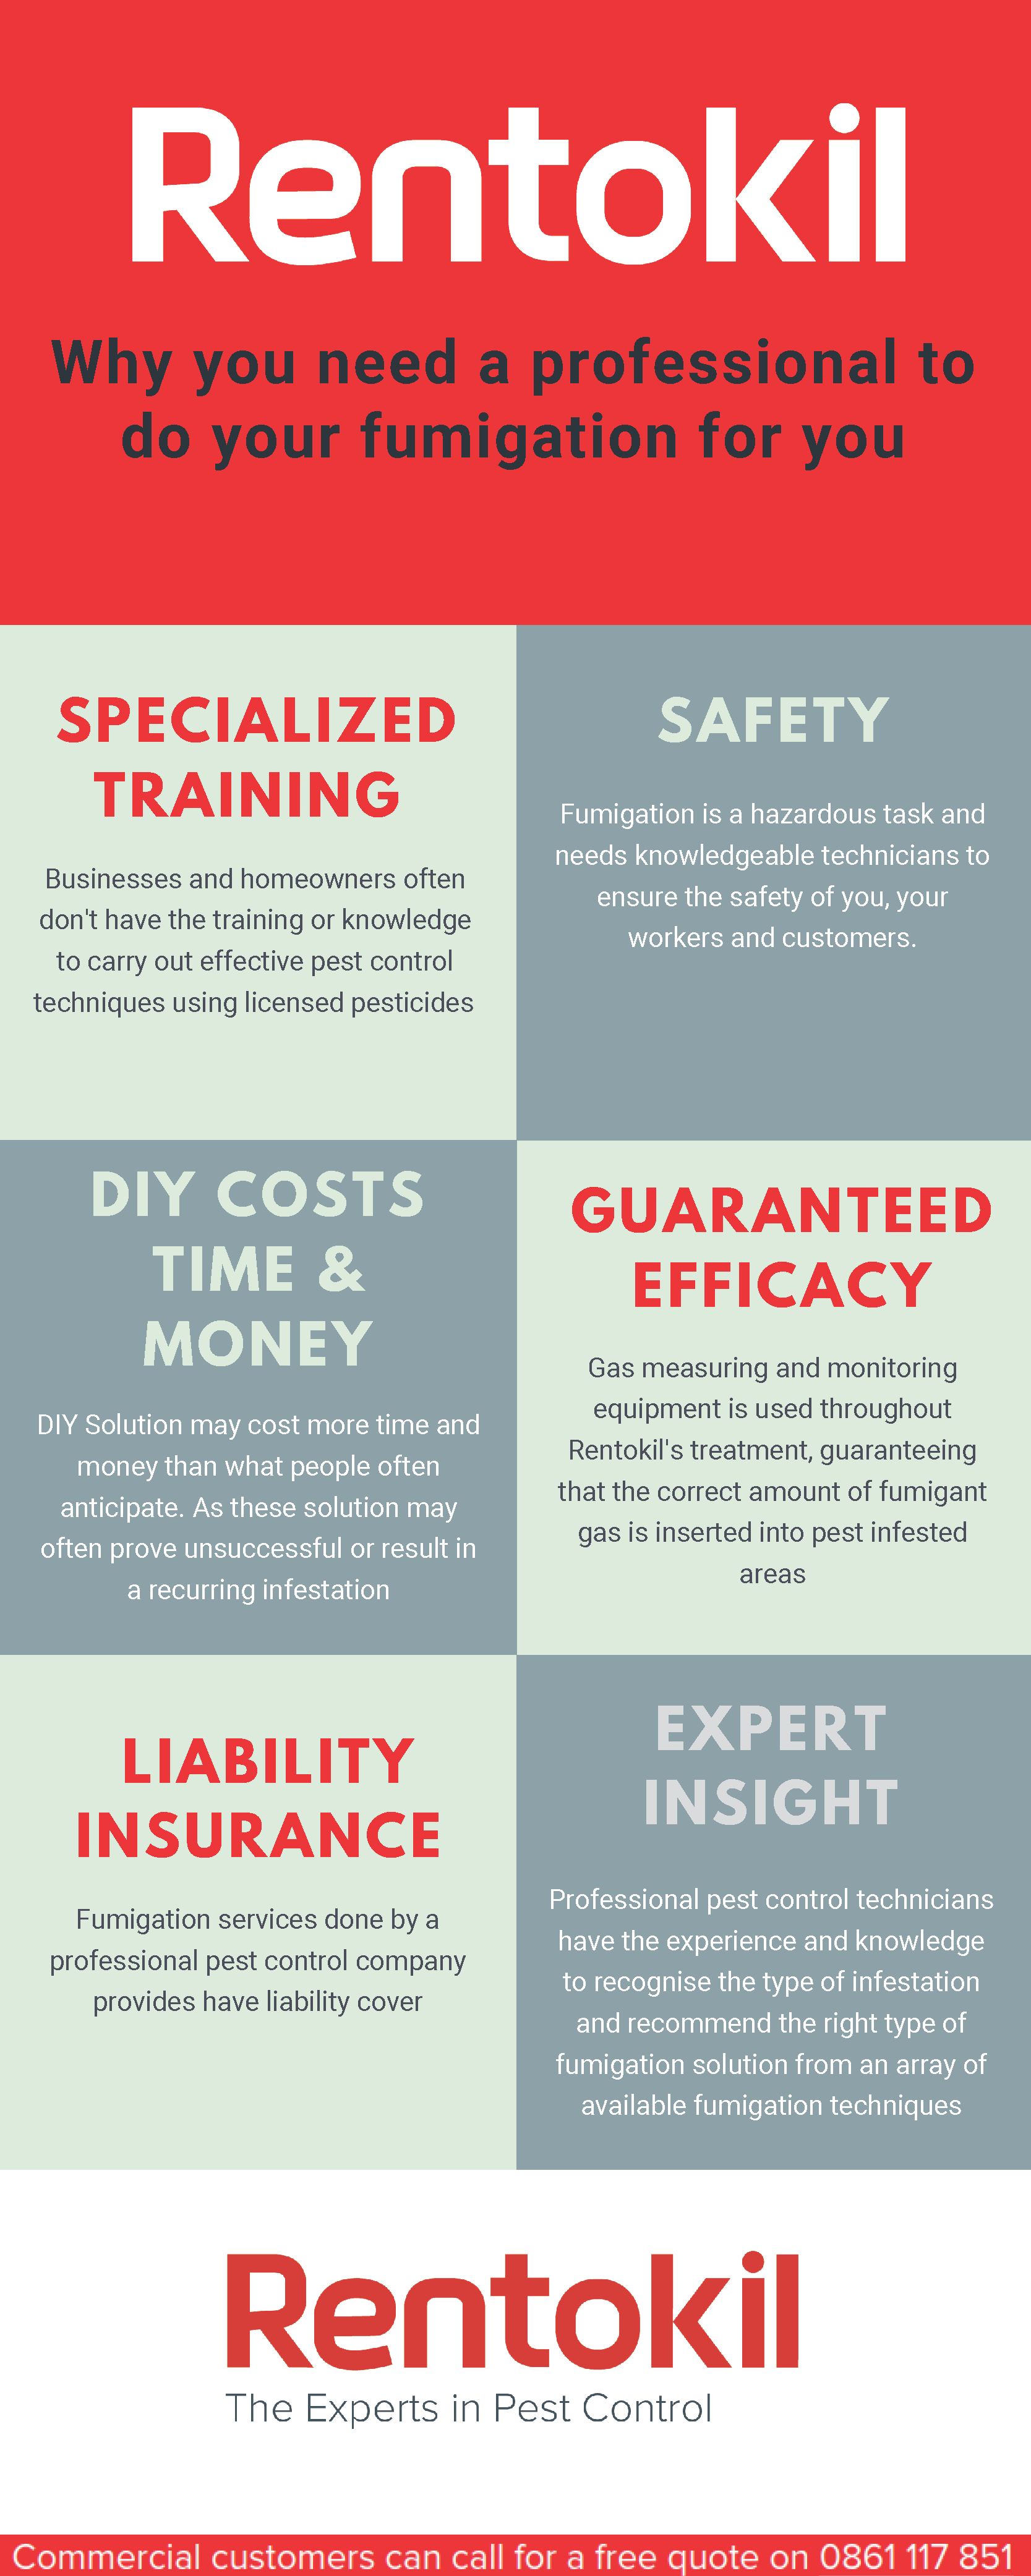 ZA - Rentokil - Blog Image - Why you need a professional to do your fumigation for you - Infographic